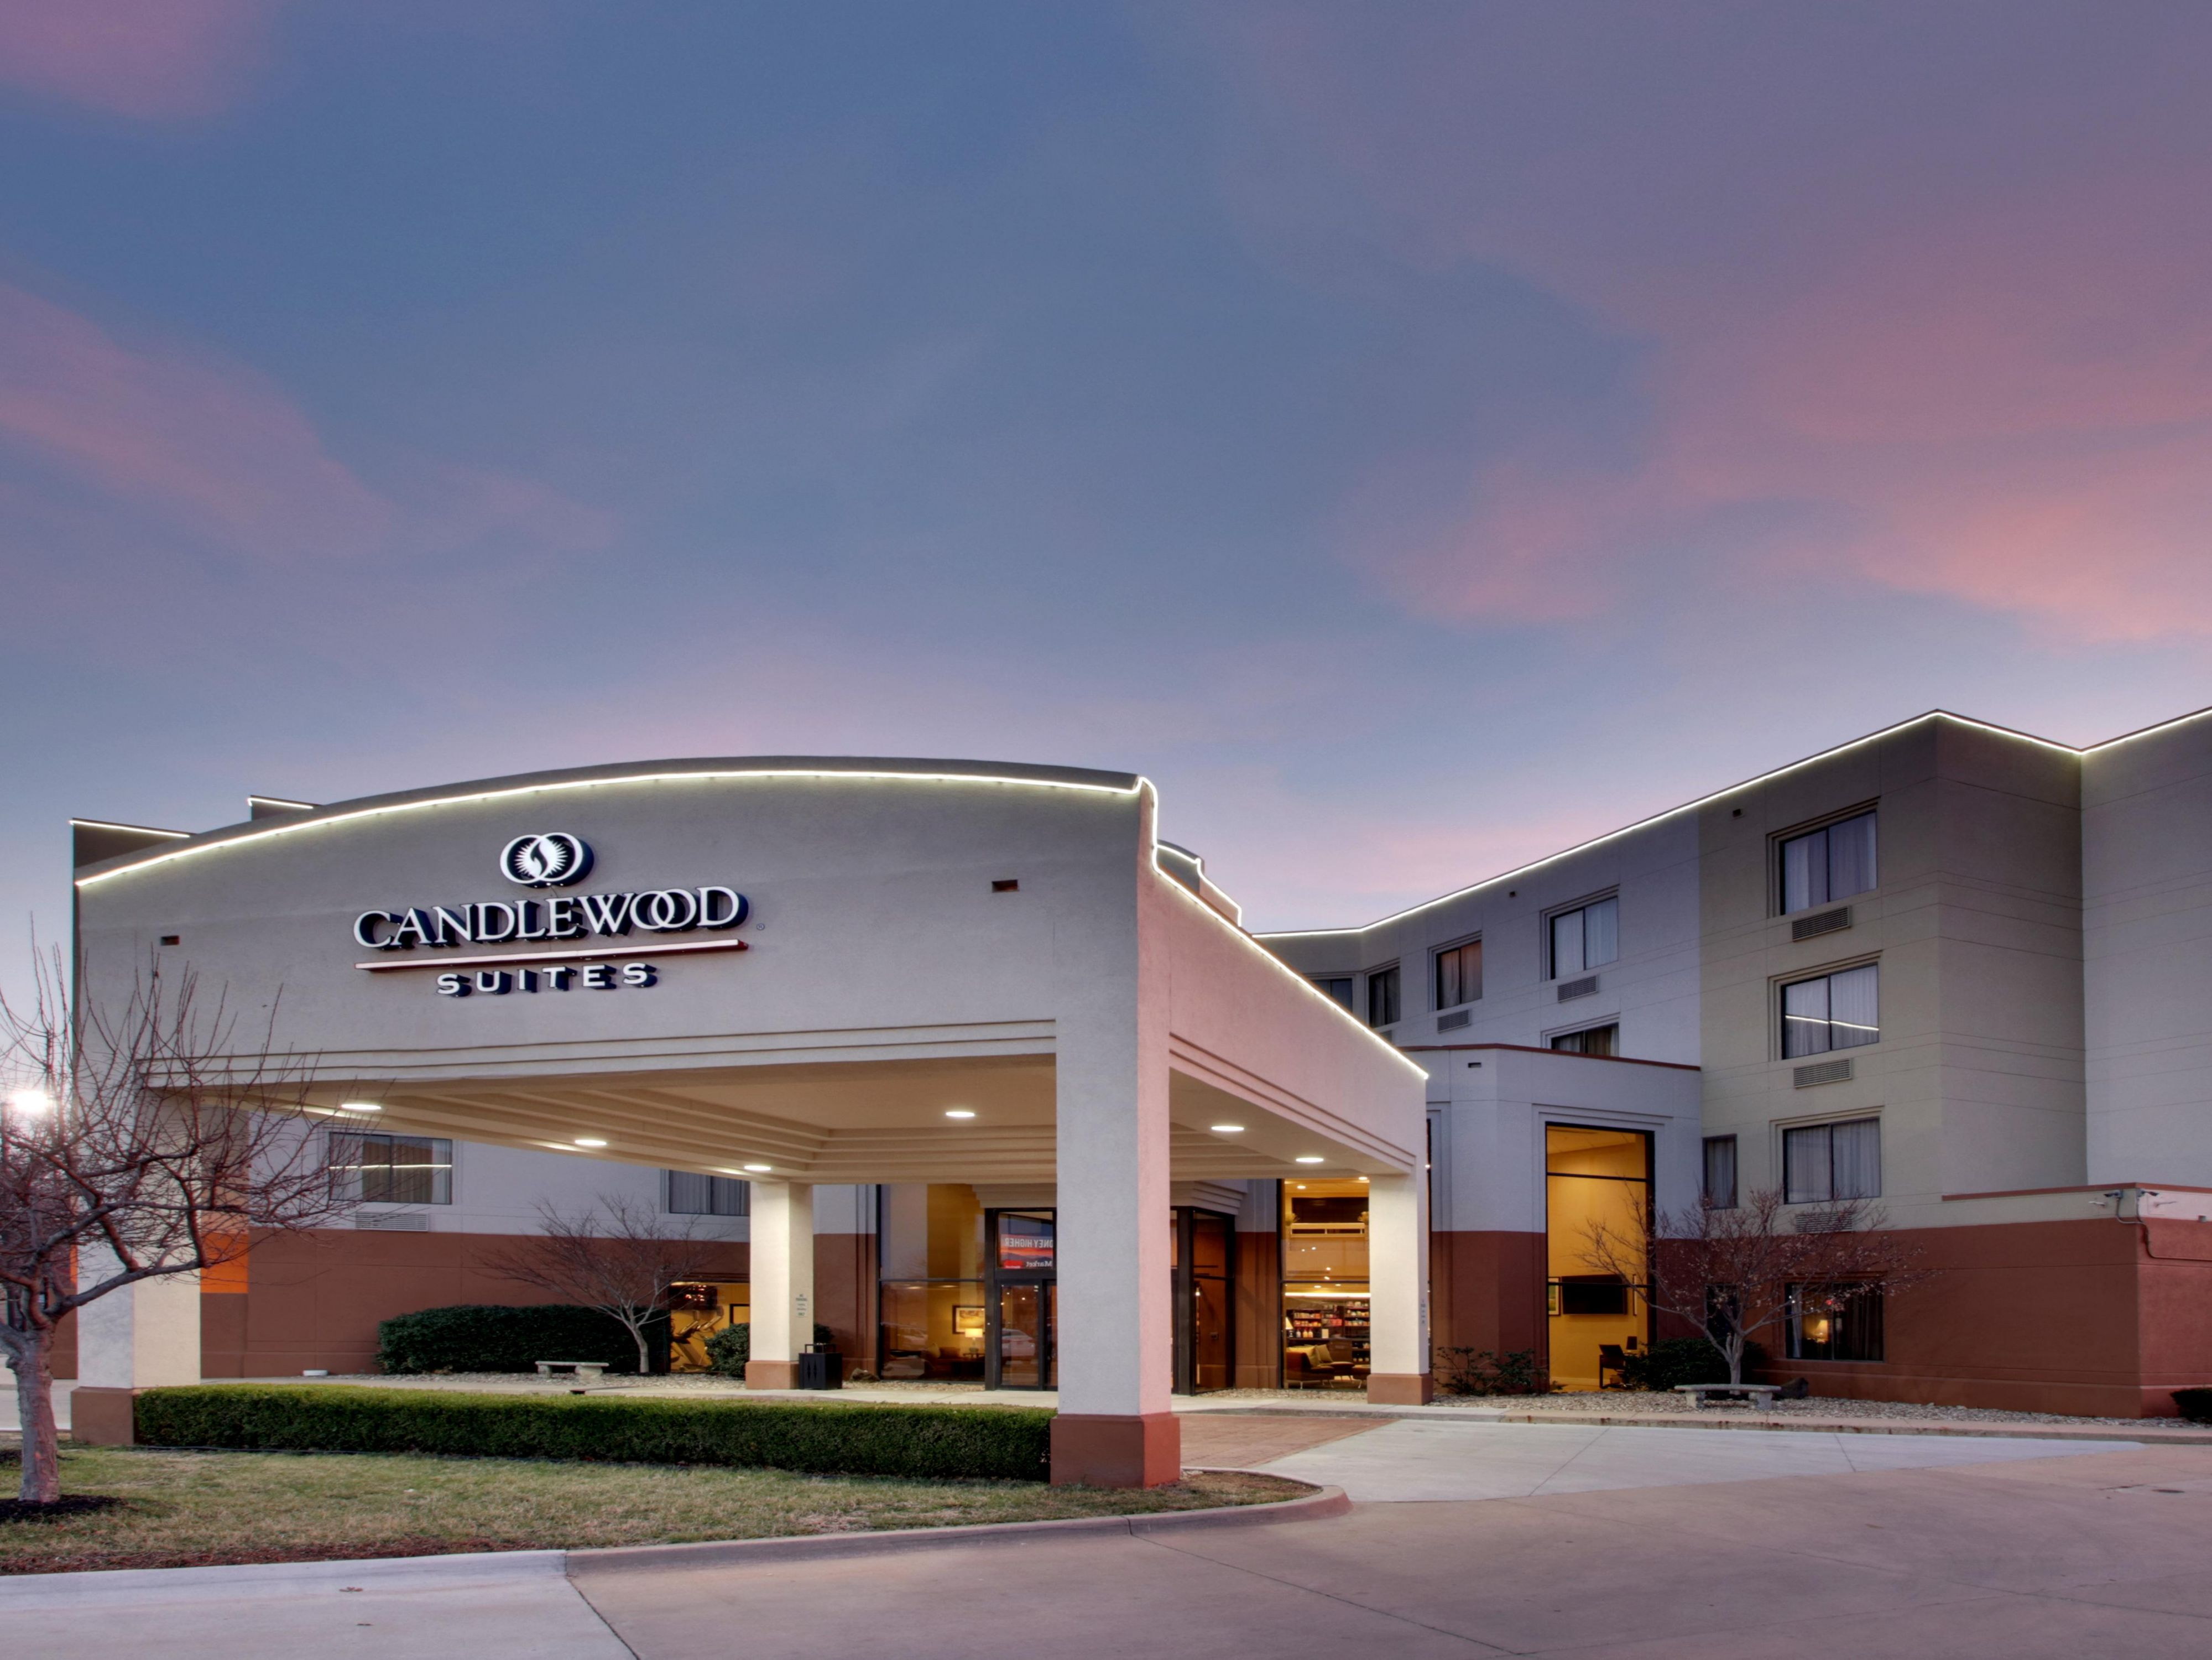 Candlewood Suites Wichita East - Extended Stay Hotel in Wichita, Kansas